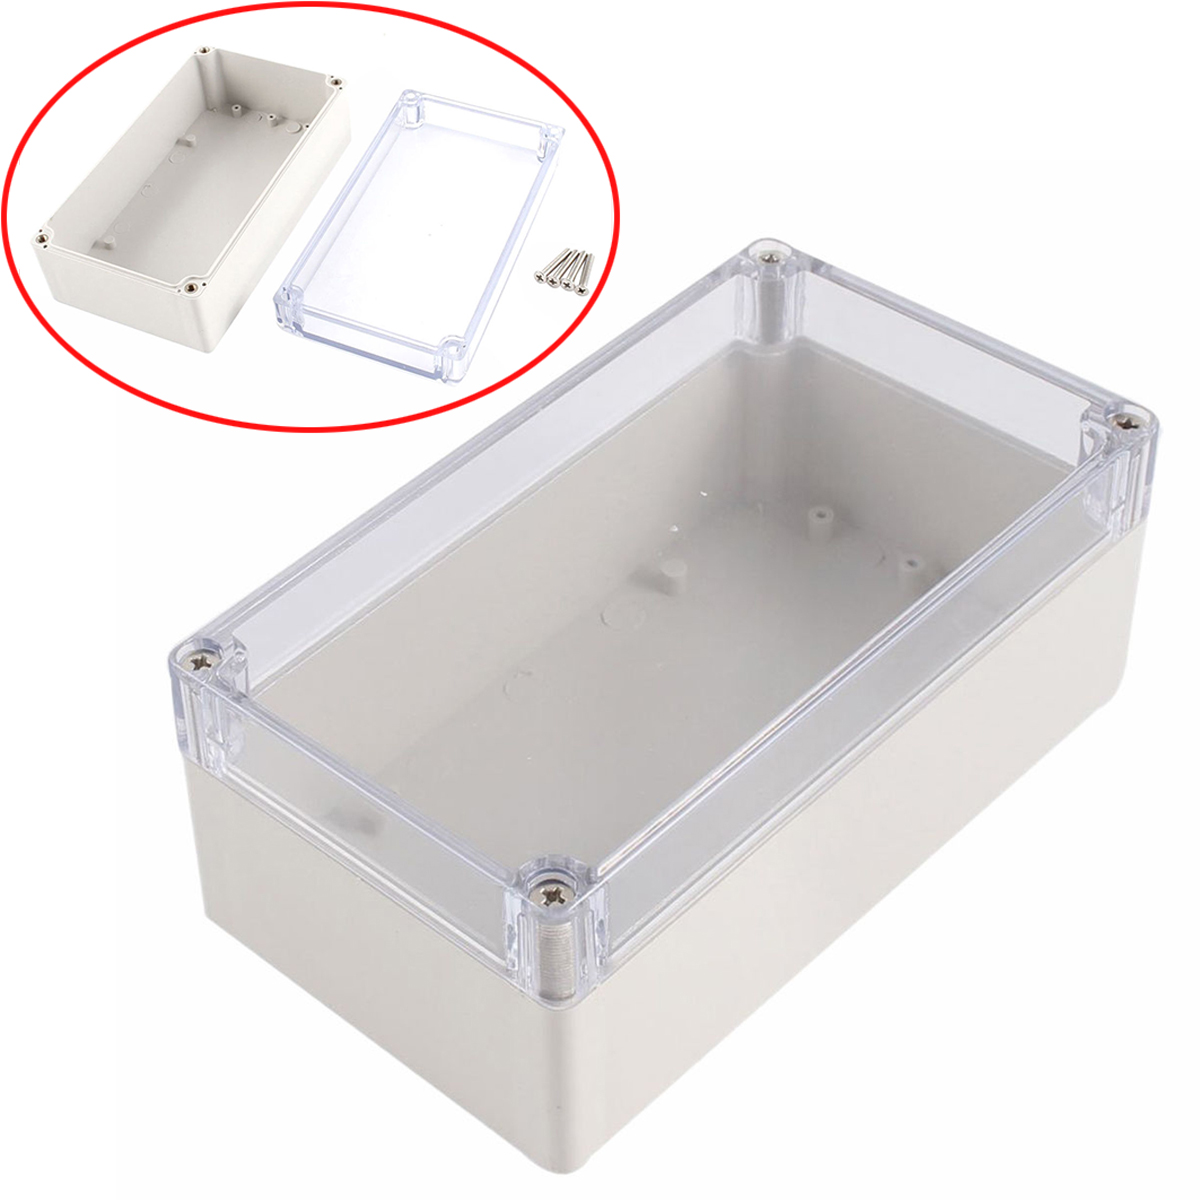 High Quality Waterproof Enclosure Case Clear Cover Plastic DIY Electronic Project Instrument Box 158mmx90mmx60mm mp3 плеер cowon plenue 1 128gb gold